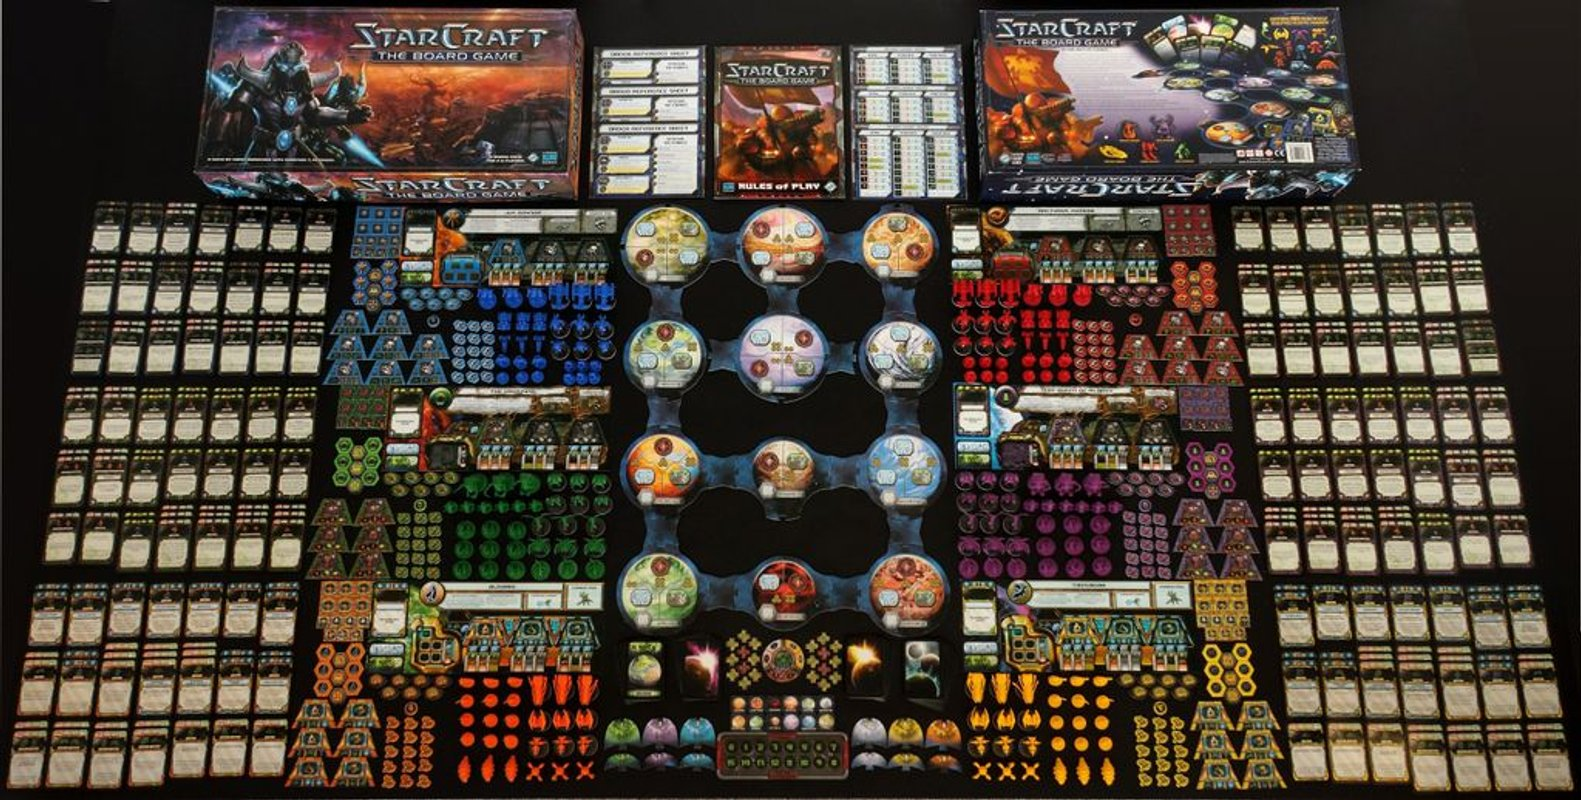 StarCraft: The Board Game components